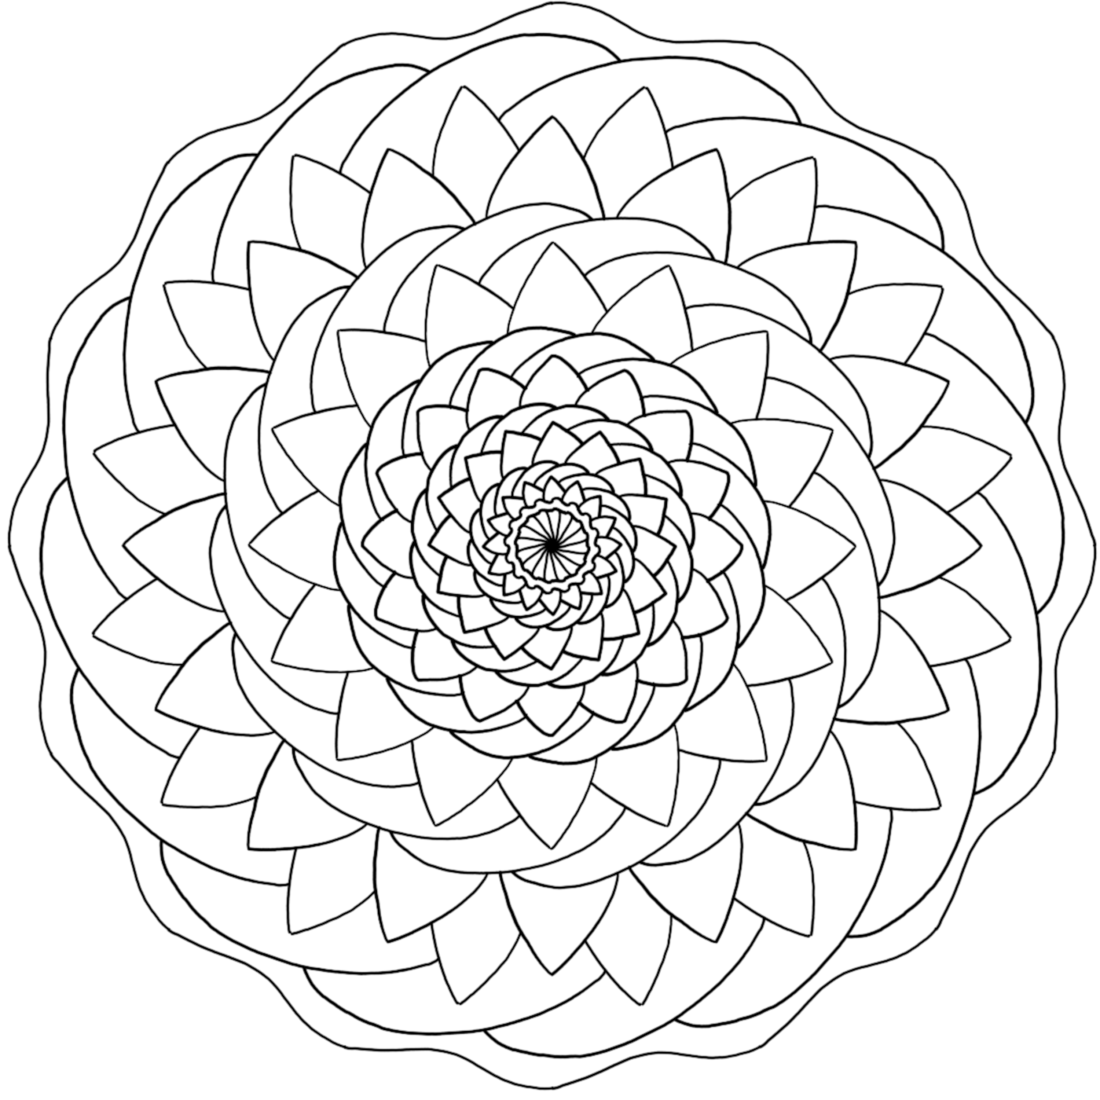 Picture of Breathe Calmly coloring page